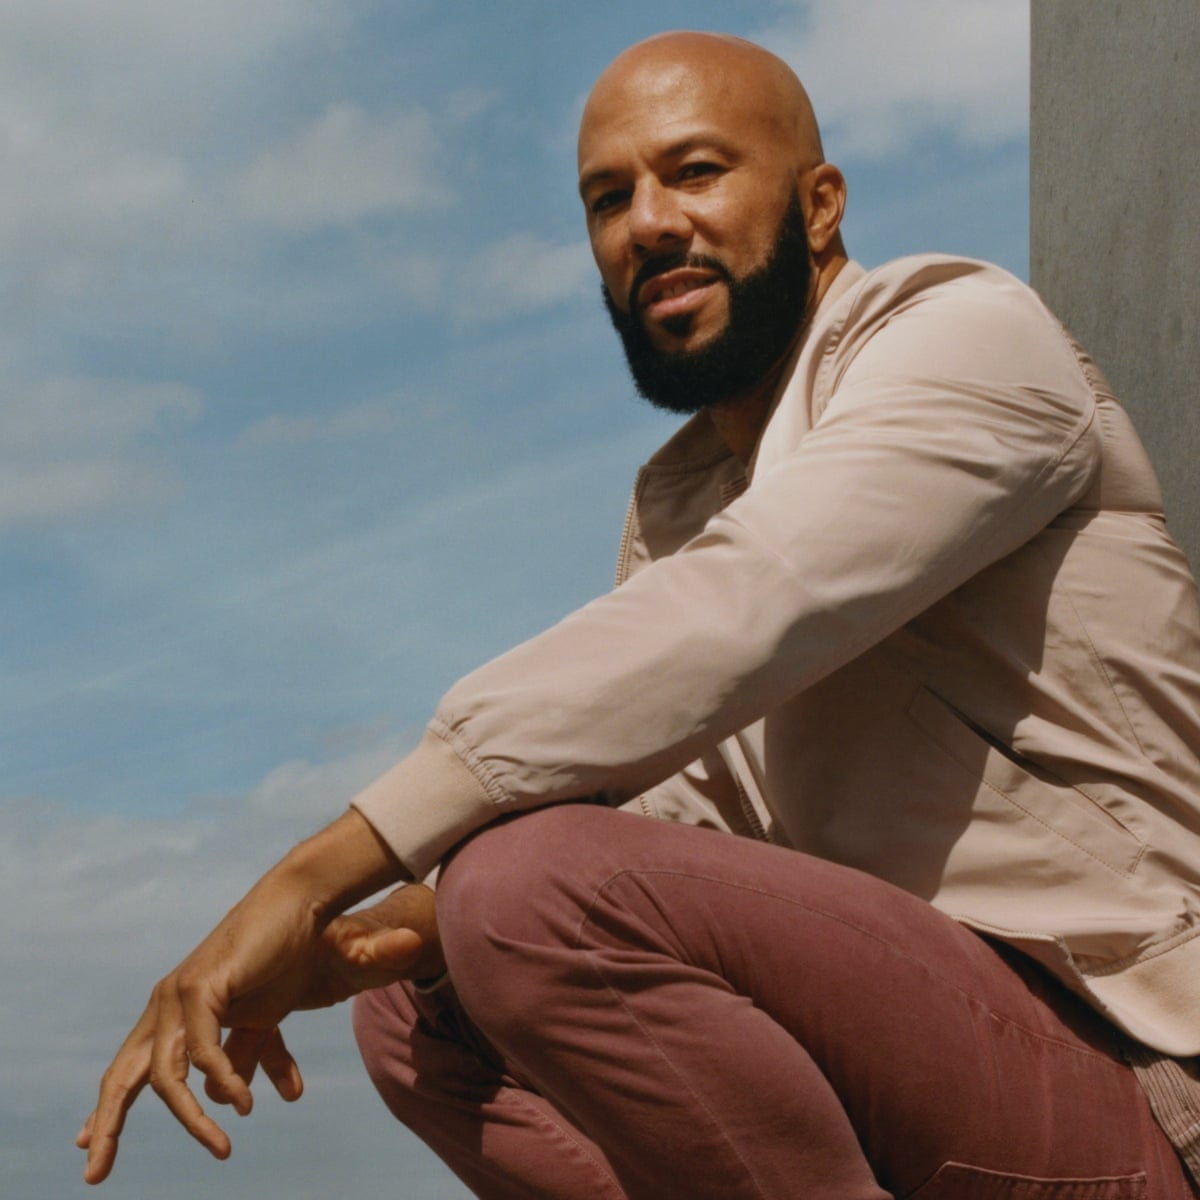 Common I Wanted To Be The Dopest Then I Found A Higher Purpose Rap The Guardian